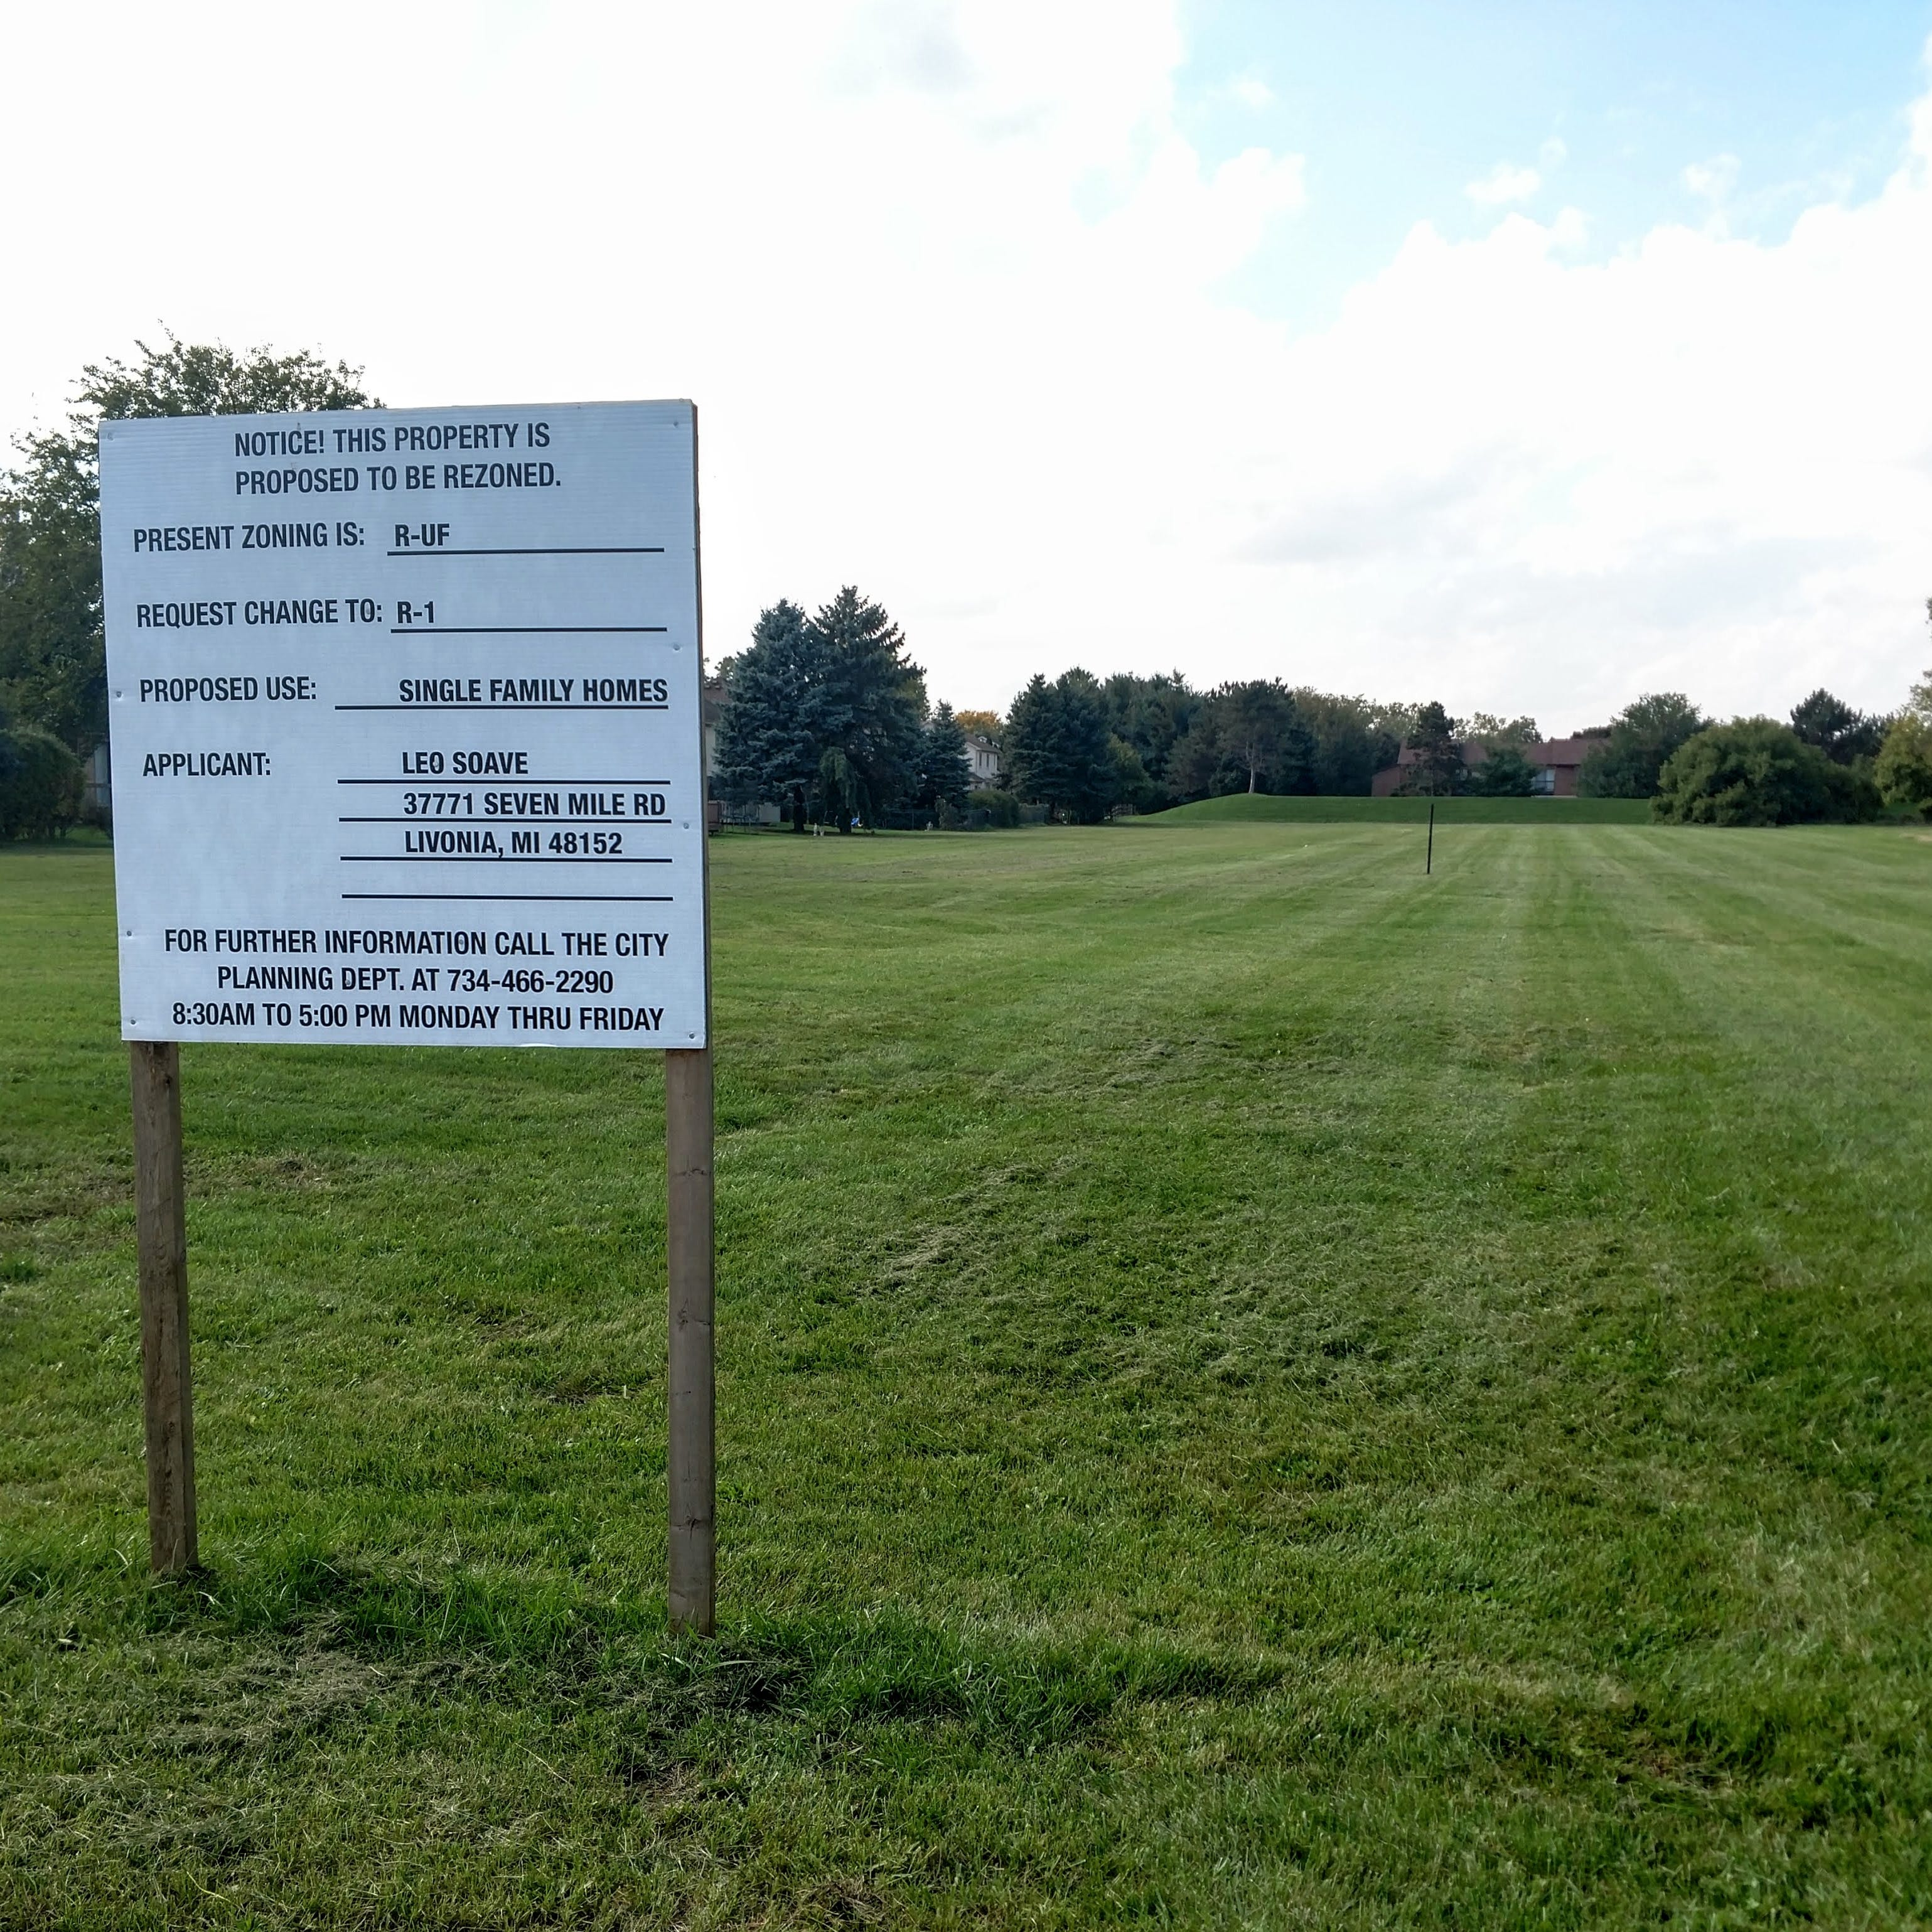 Developer seeking to build up to 20 homes on vacant Livonia lot